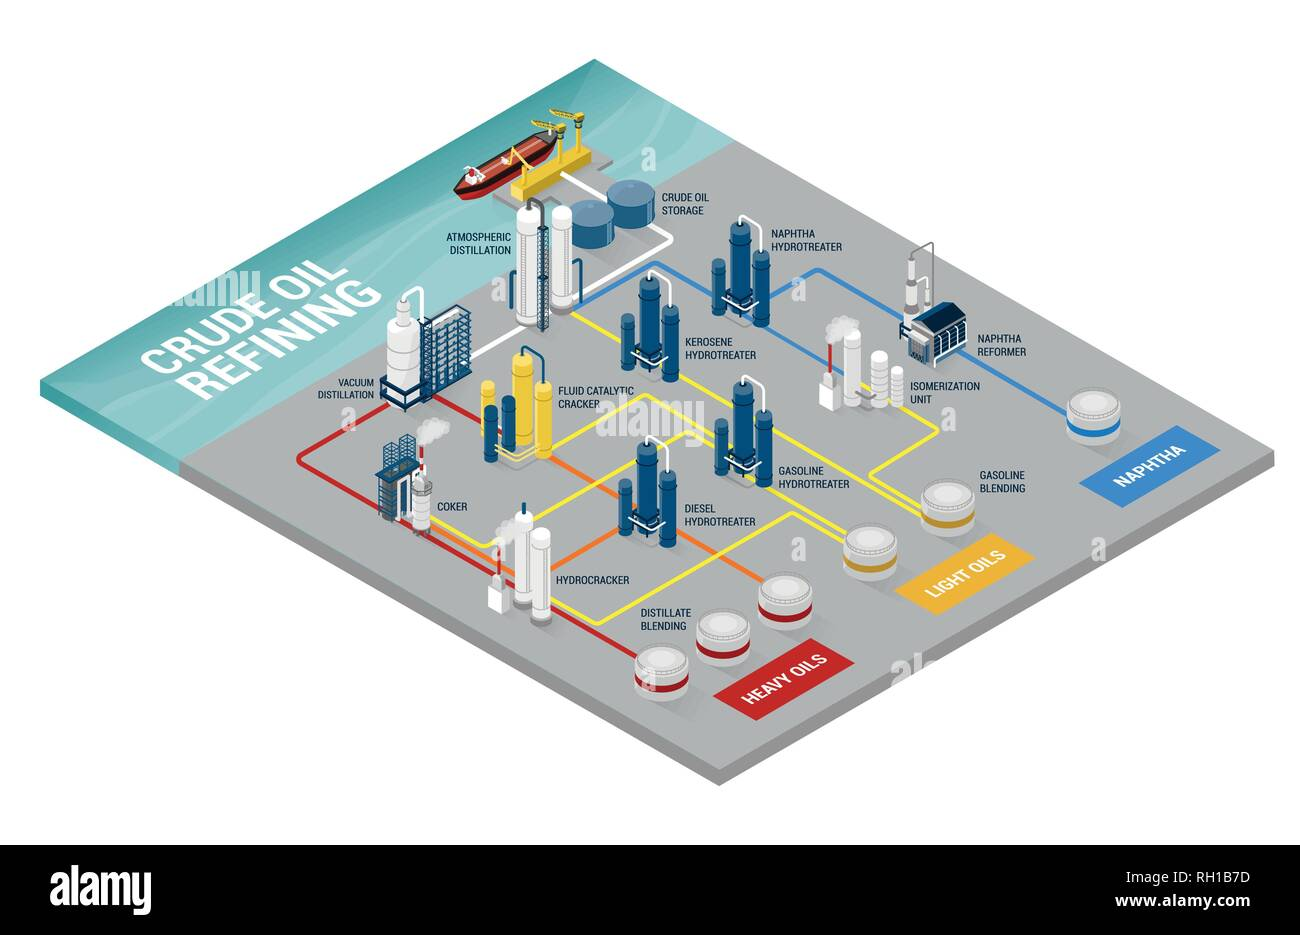 Crude oil refining process infographic and final products, oil industry and production - Stock Image